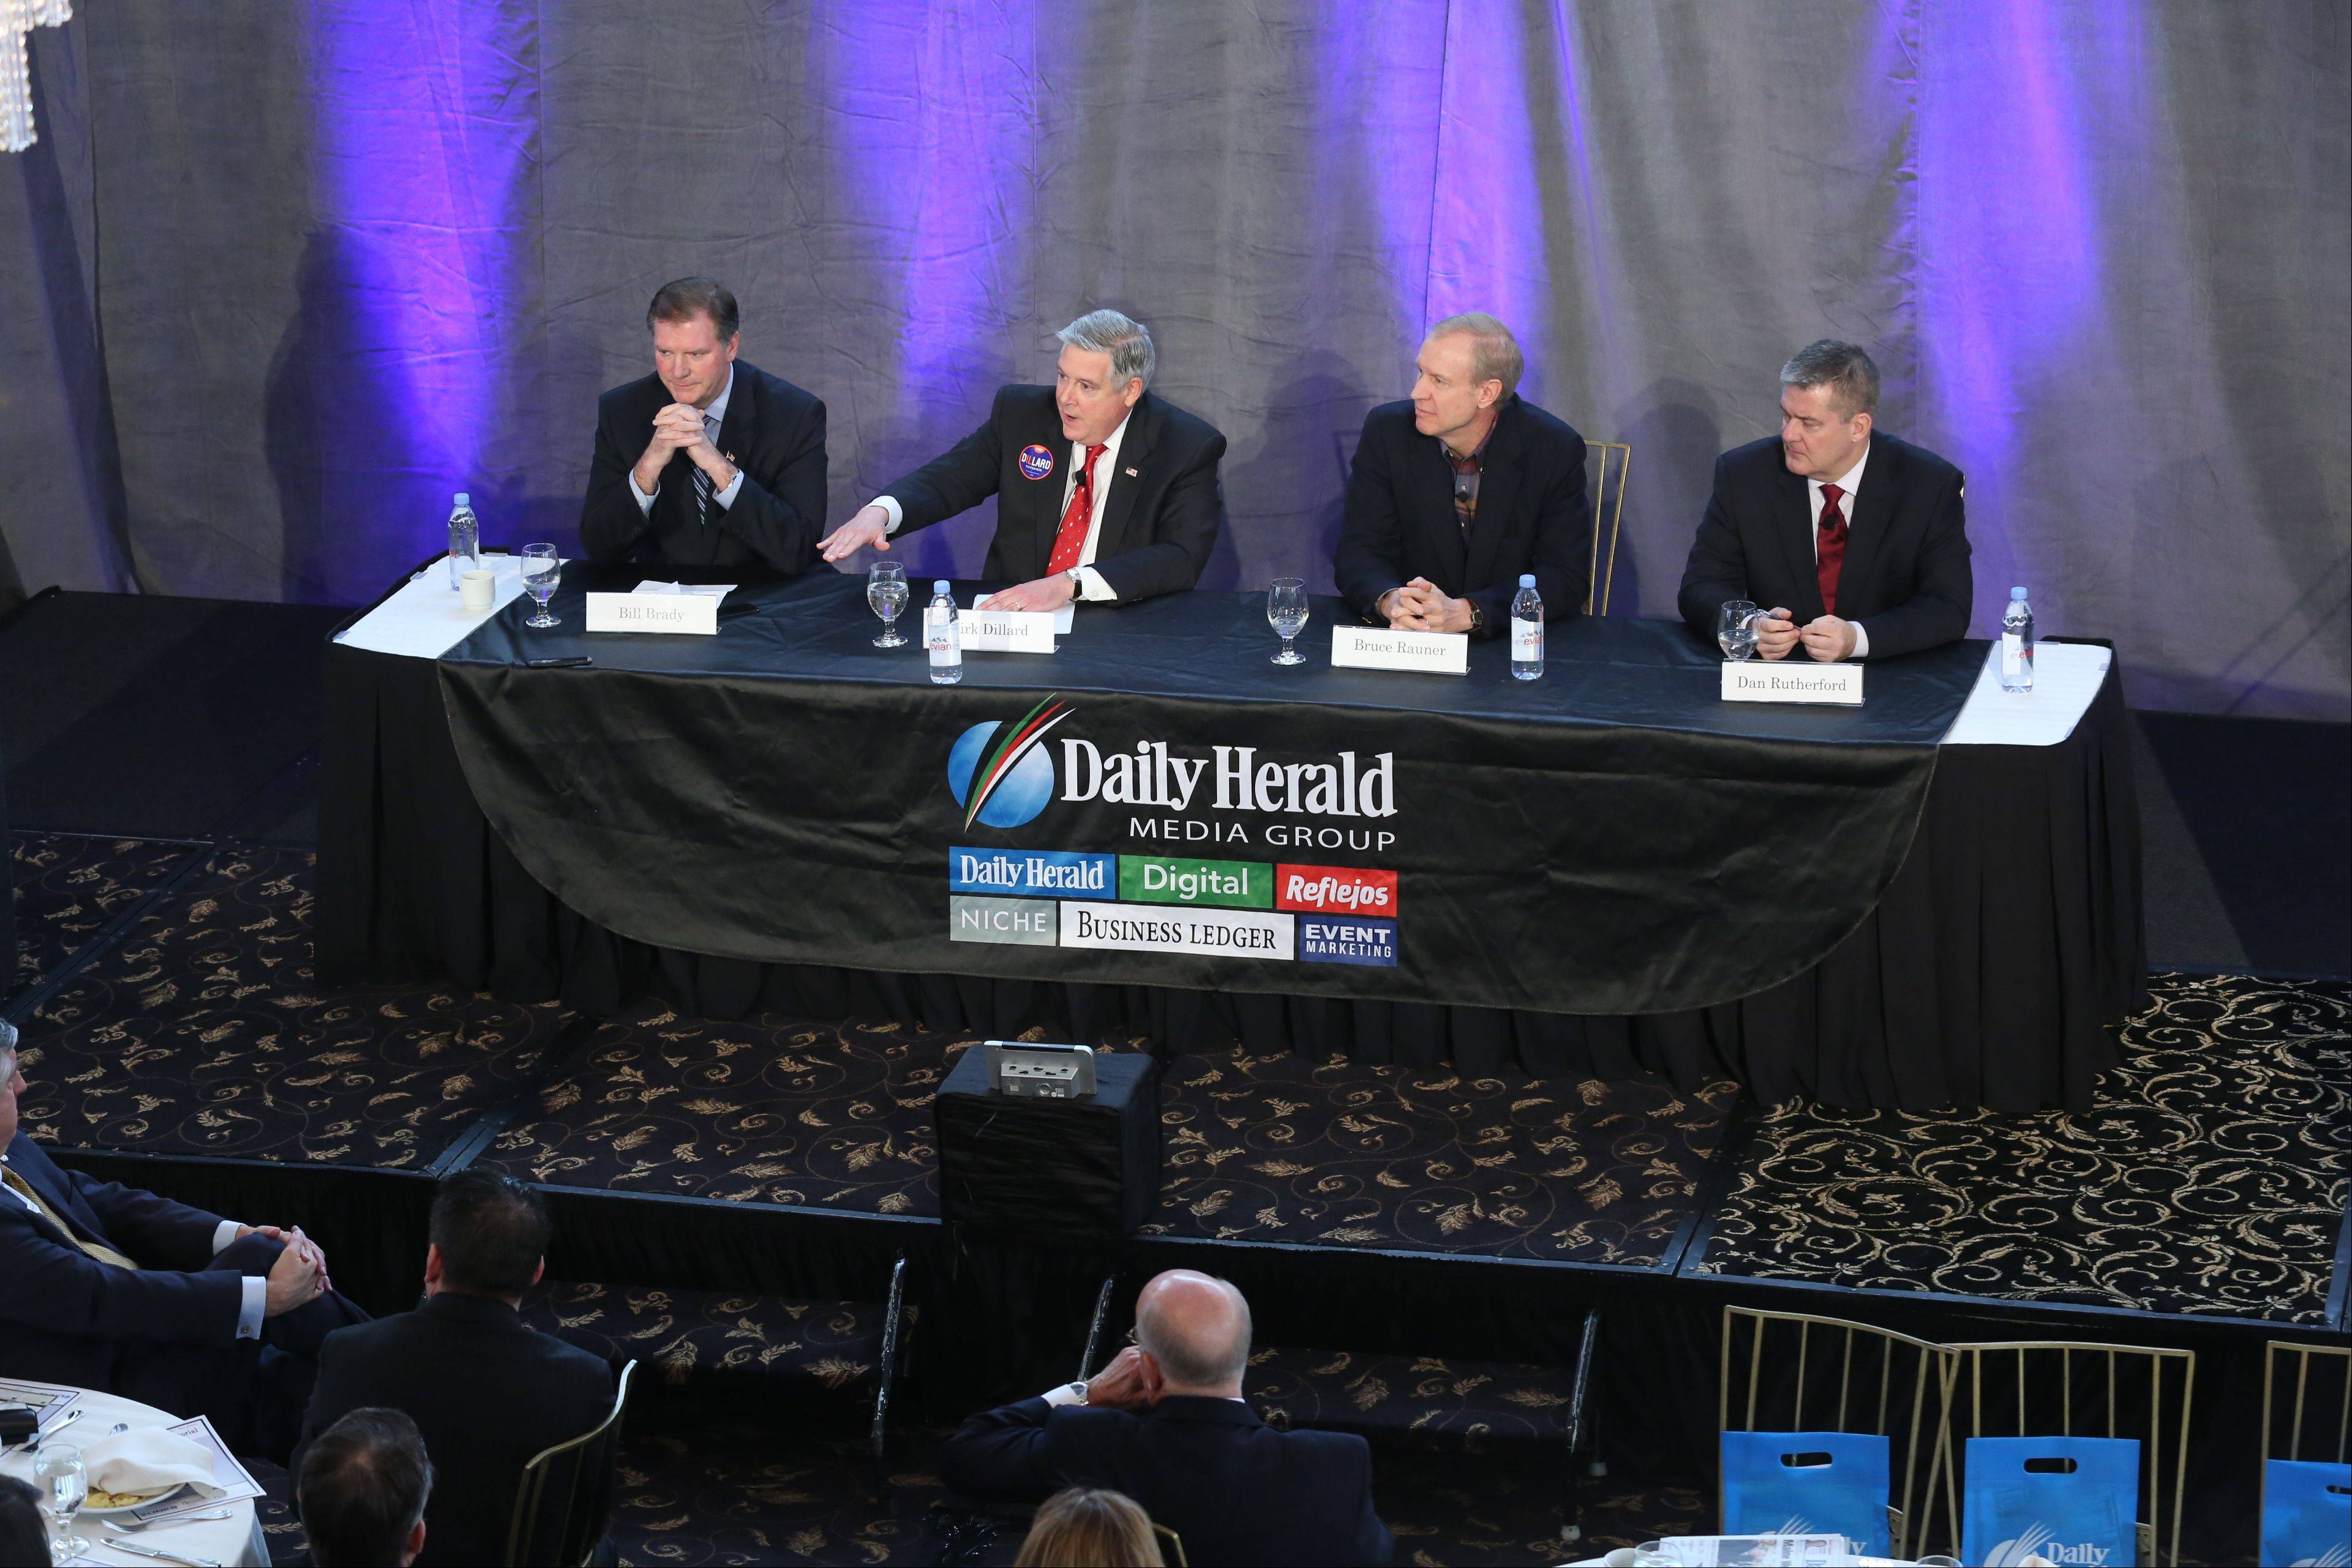 GOP gubernatorial candidates, from left, state Sen. Bill Brady, state Sen. Kirk Dillard, Bruce Rauner and Illinois Treasurer Dan Rutherford met last week in a candidate forum sponsored by the Daily Herald, ABC 7 and the Daily Herald Business Ledger.